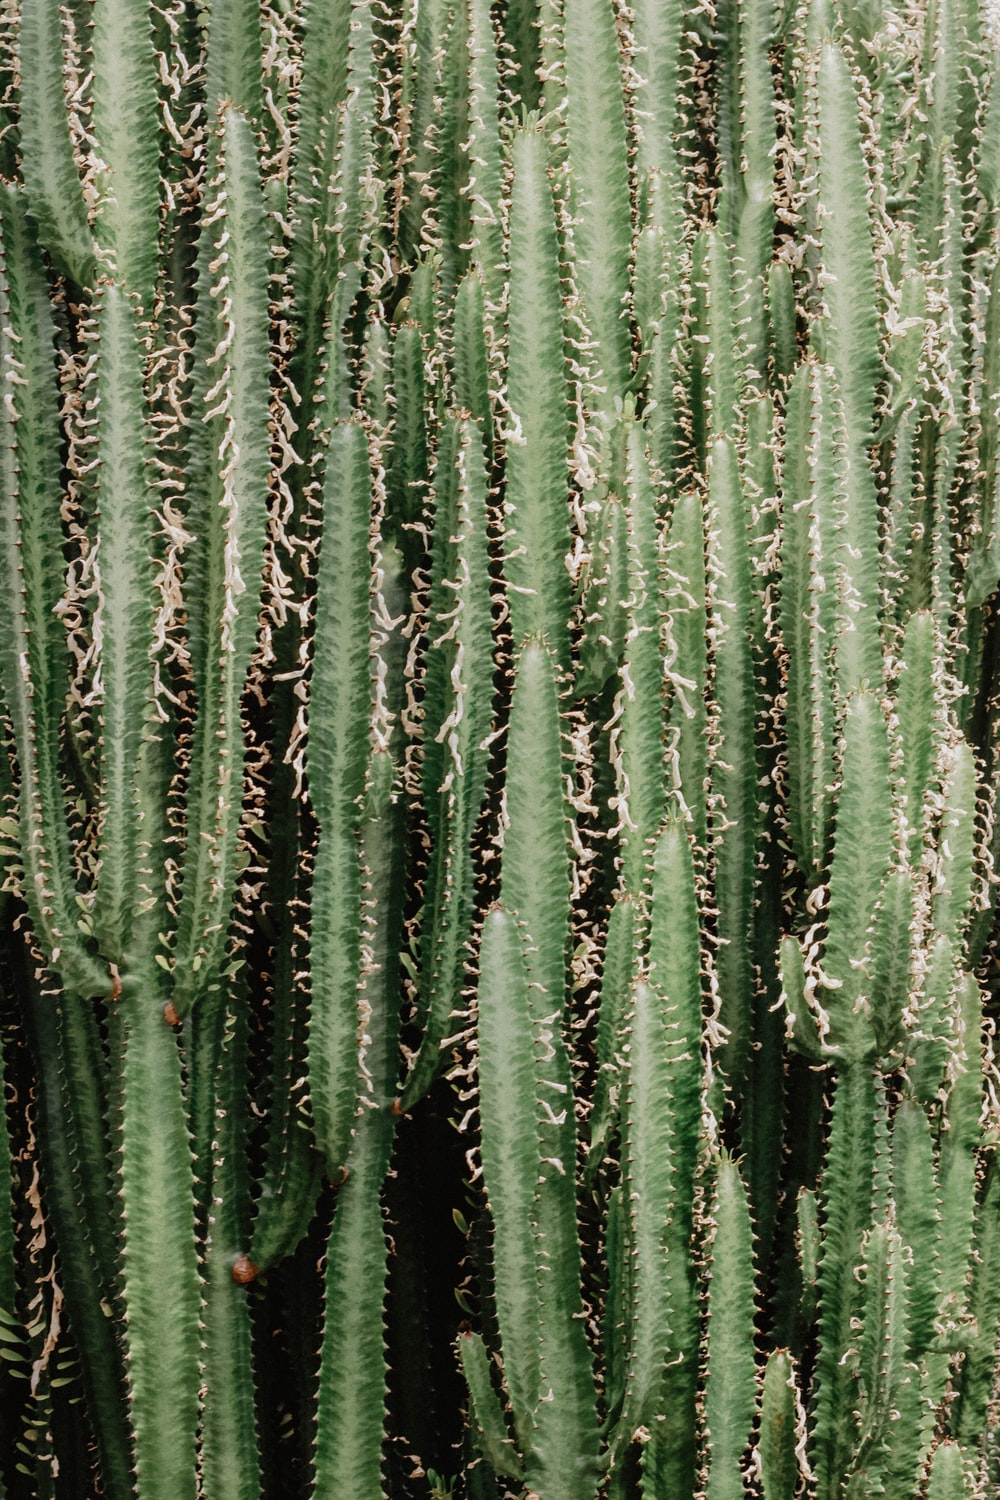 green cactus plant close-up photo